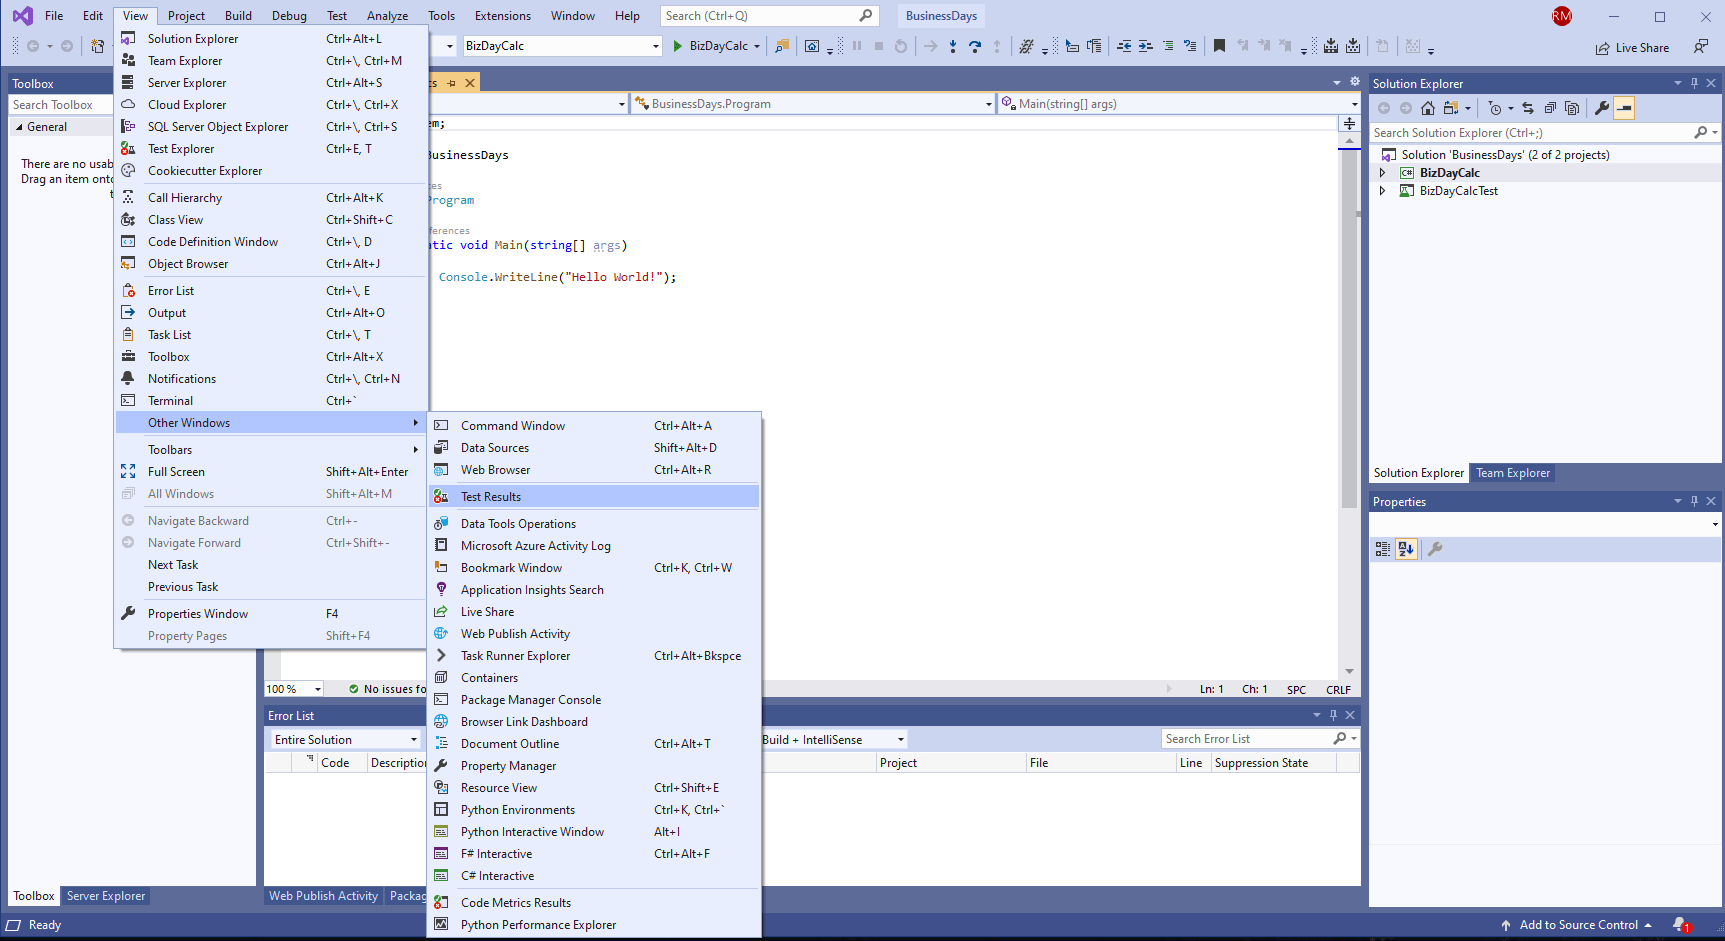 Test Results become available so now you can use NUnit in Visual Studio.